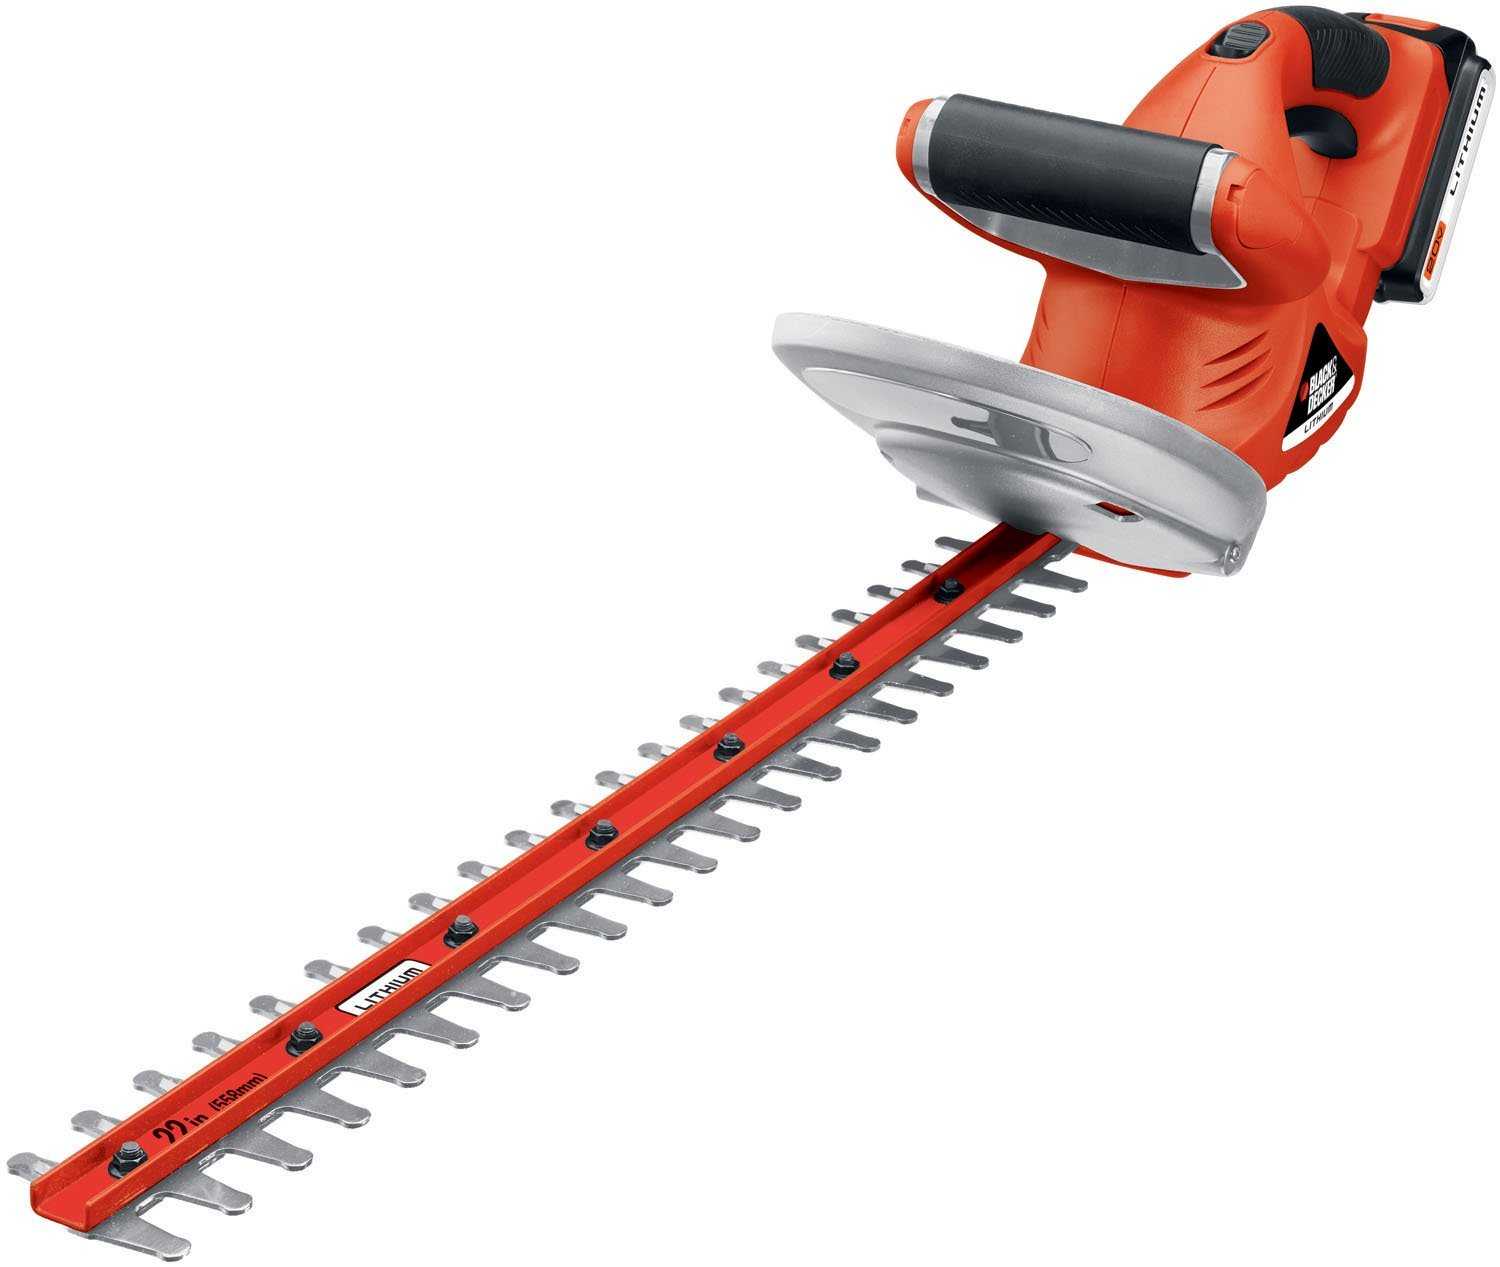 hedge trimmer reviews black decker lht120 22 inch 20. Black Bedroom Furniture Sets. Home Design Ideas